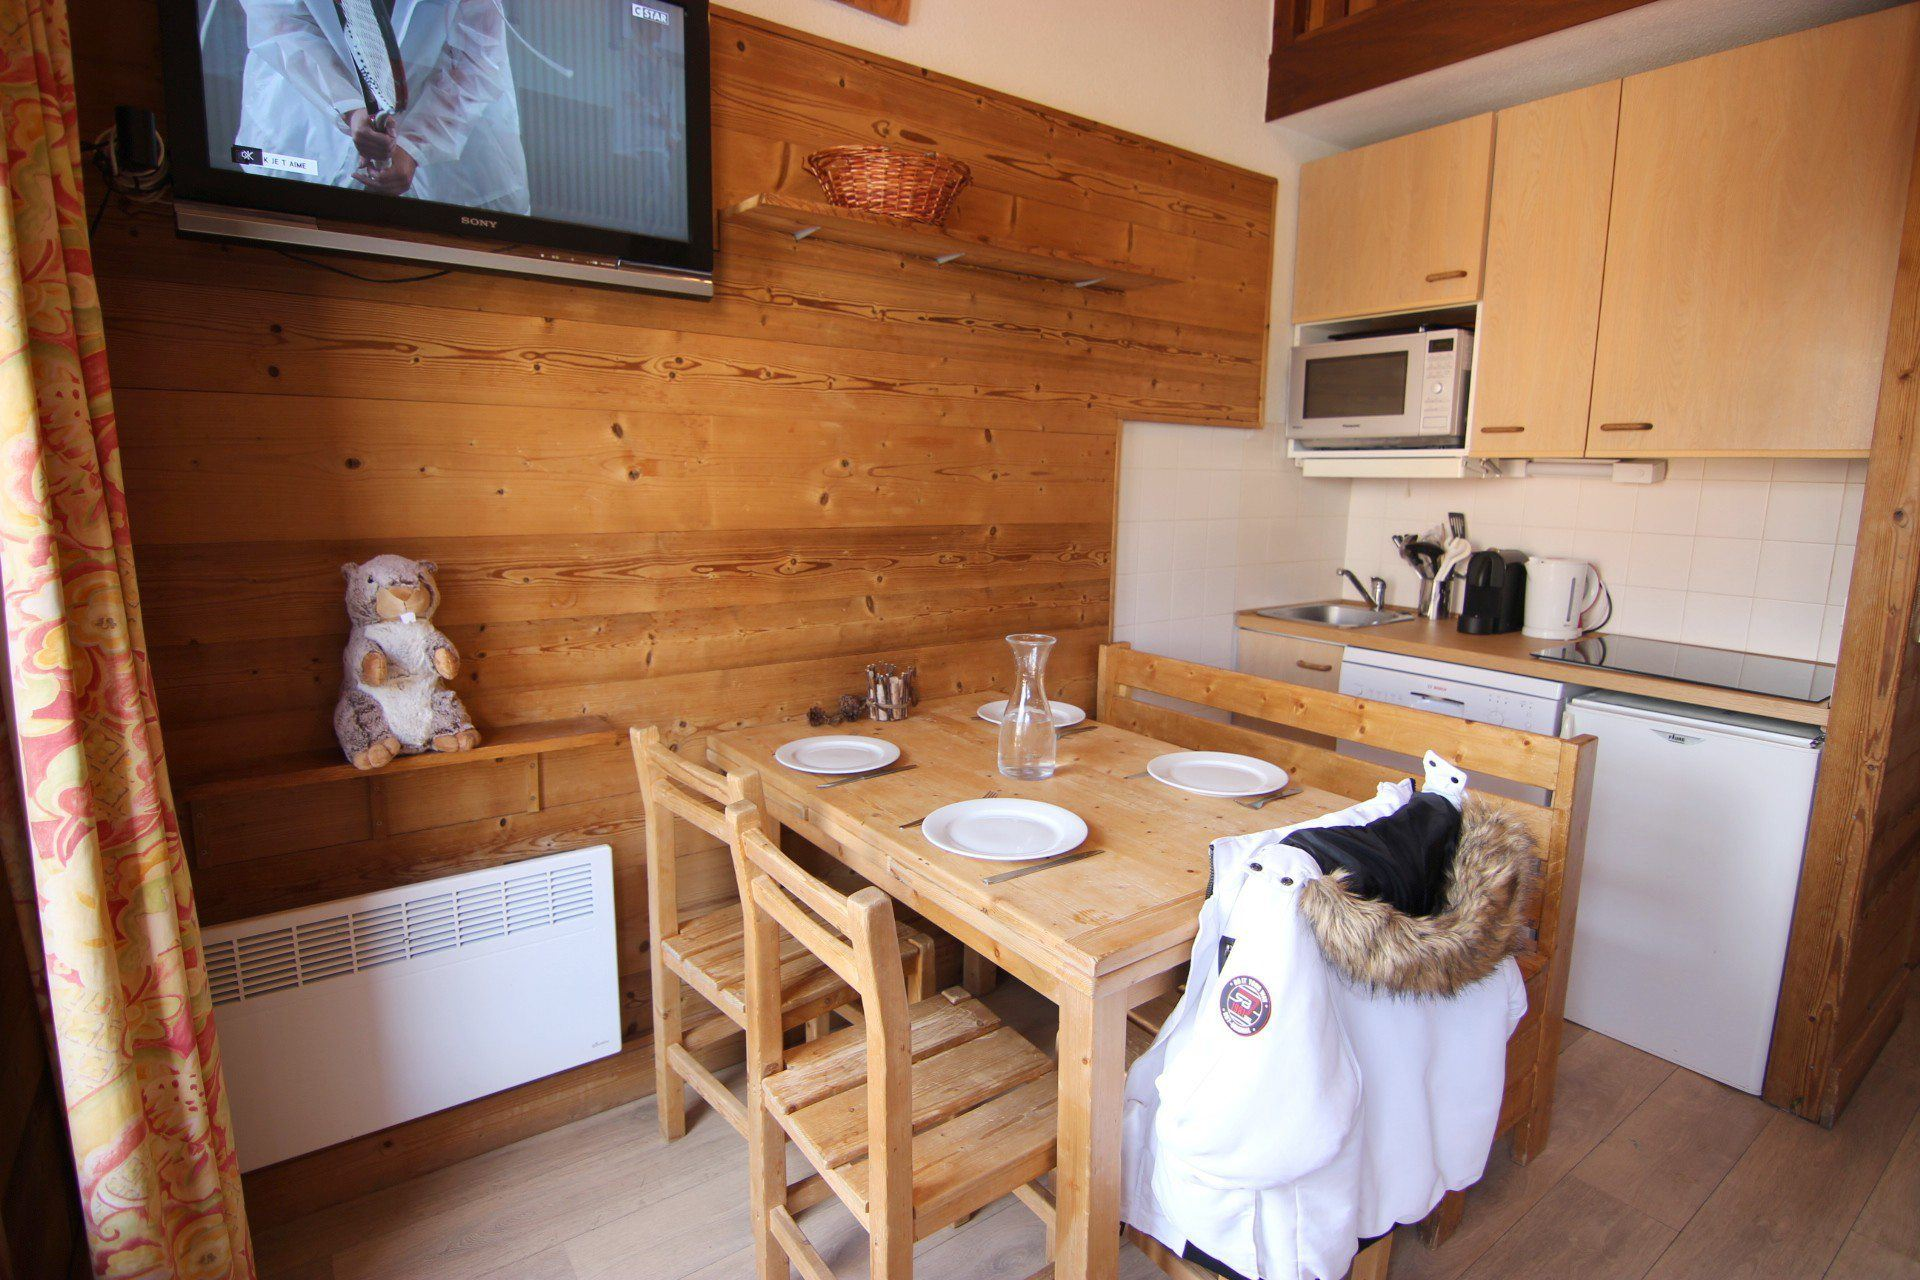 REINE BLANCHE 100 / 2 ROOMS 6 PEOPLE COMFORT